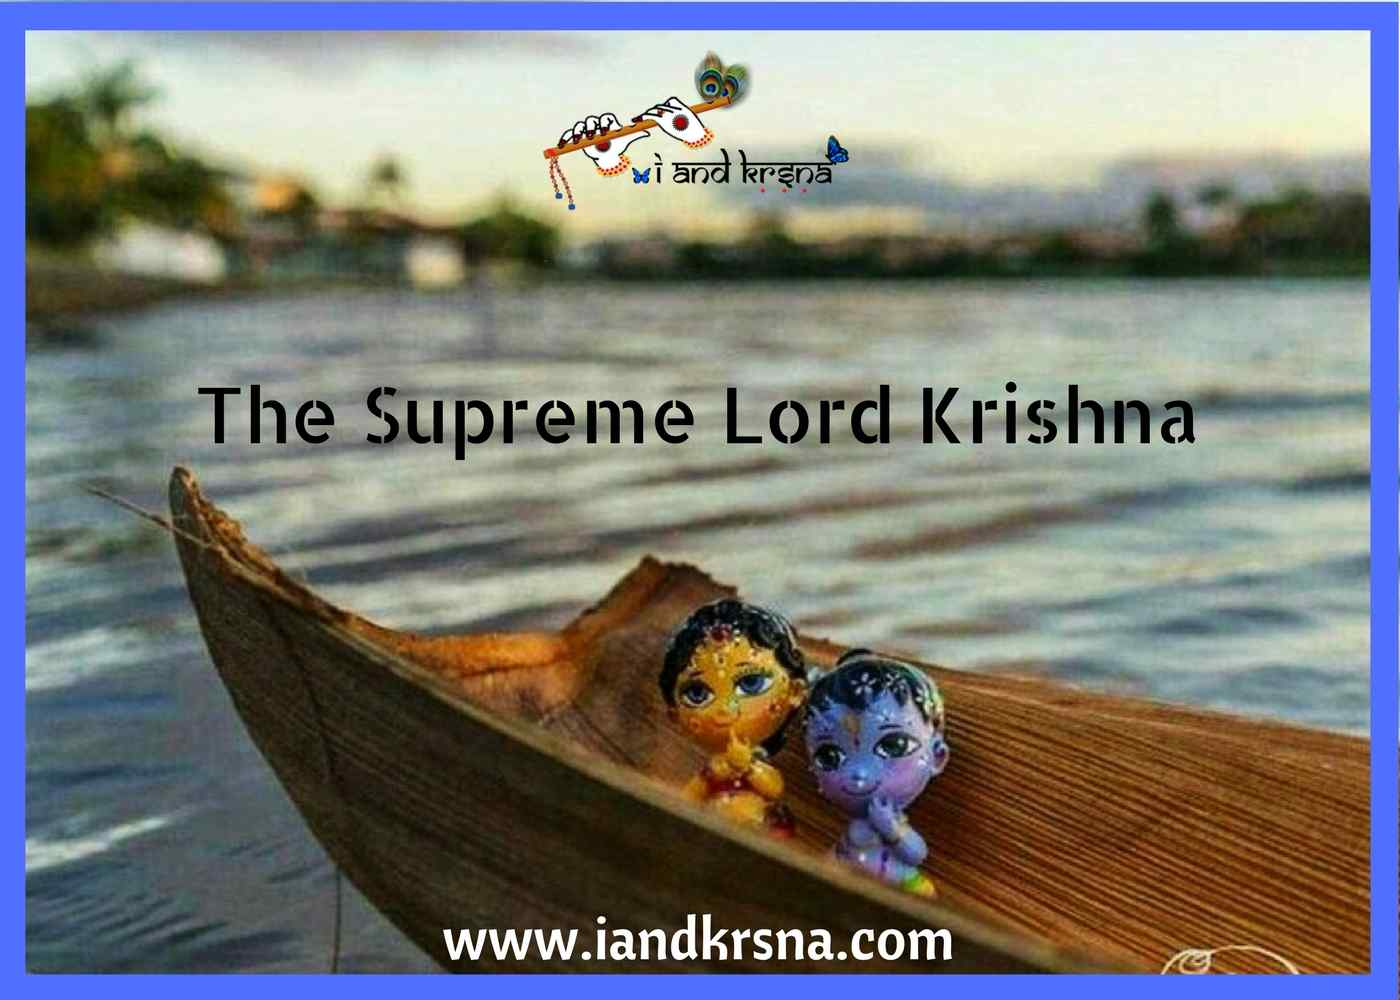 The Supreme lord krishna